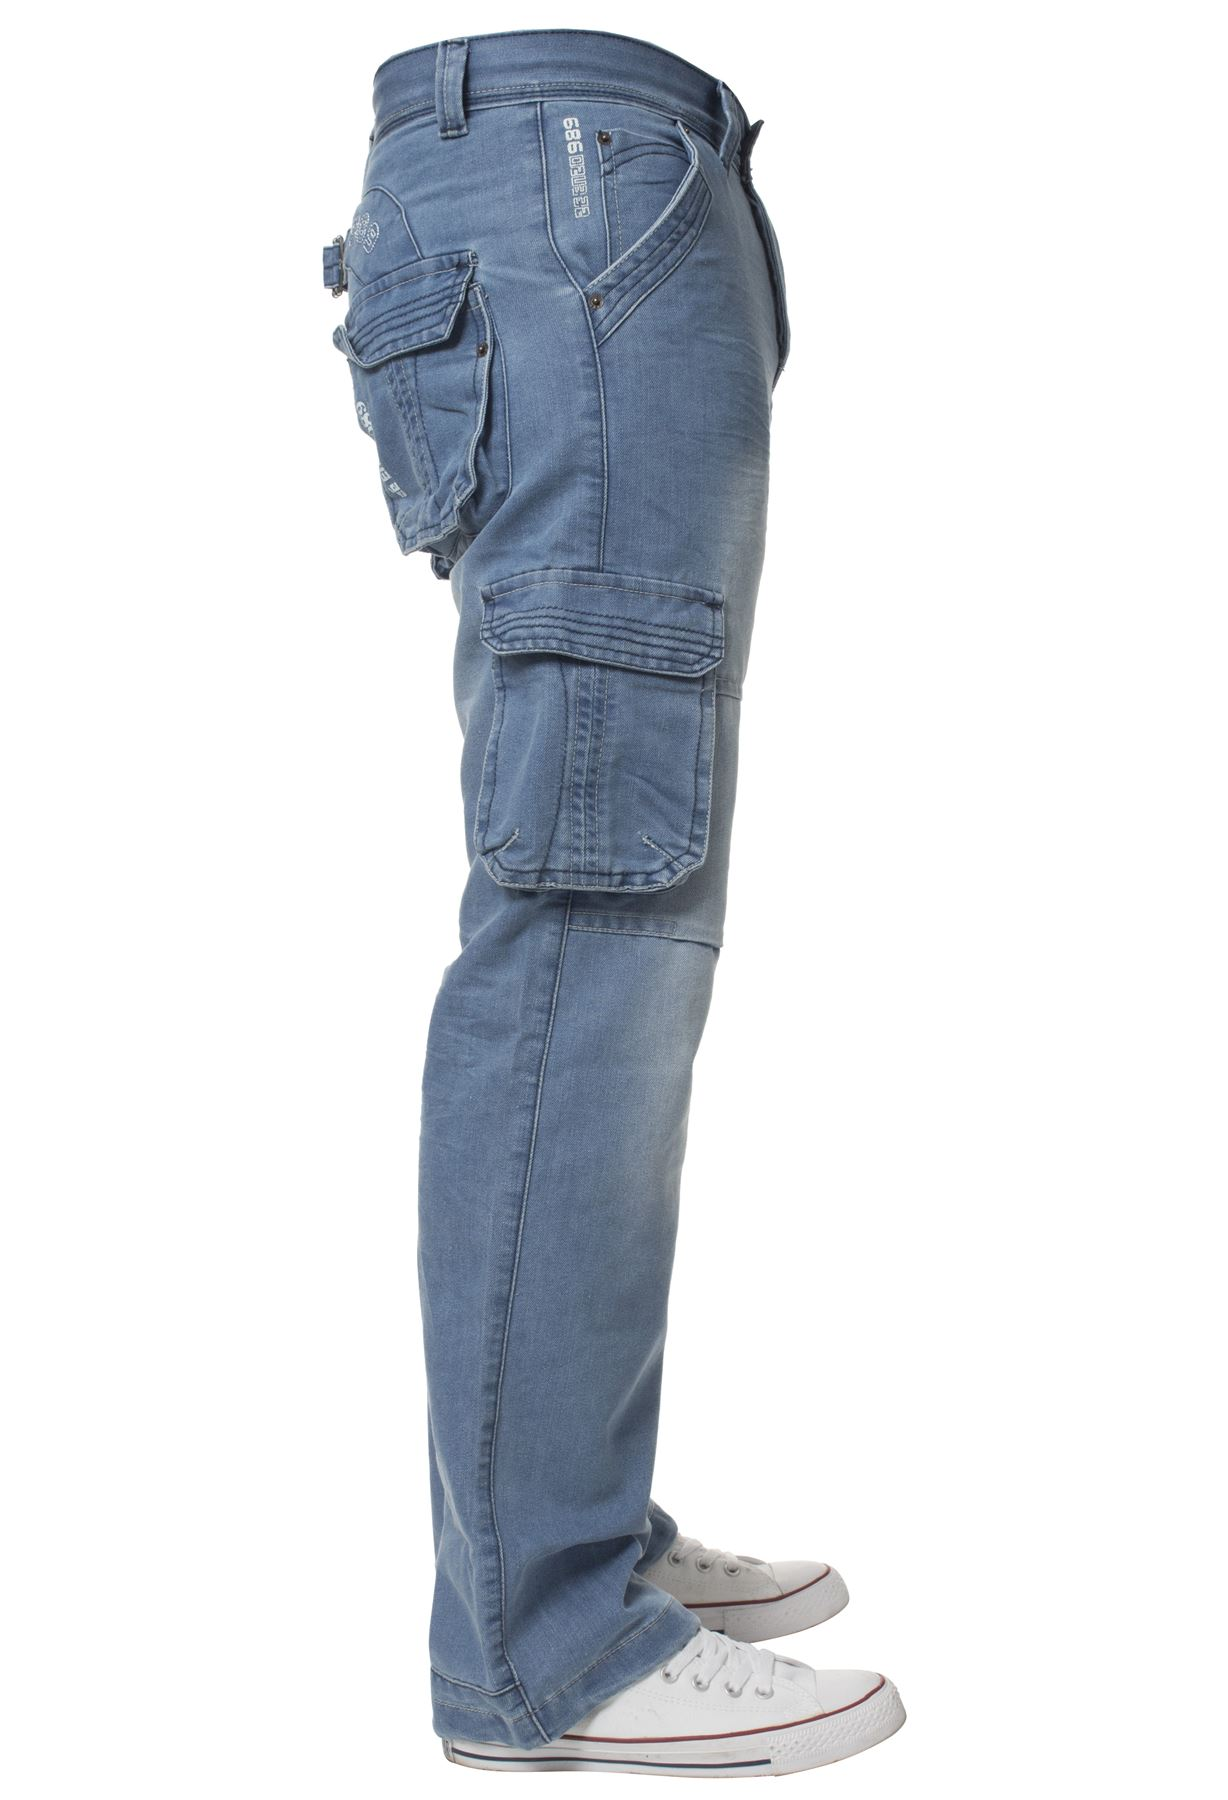 Enzo-Mens-Cargo-Combat-Trousers-Jeans-Work-Casual-Denim-Pants-Big-Tall-All-Waist thumbnail 16